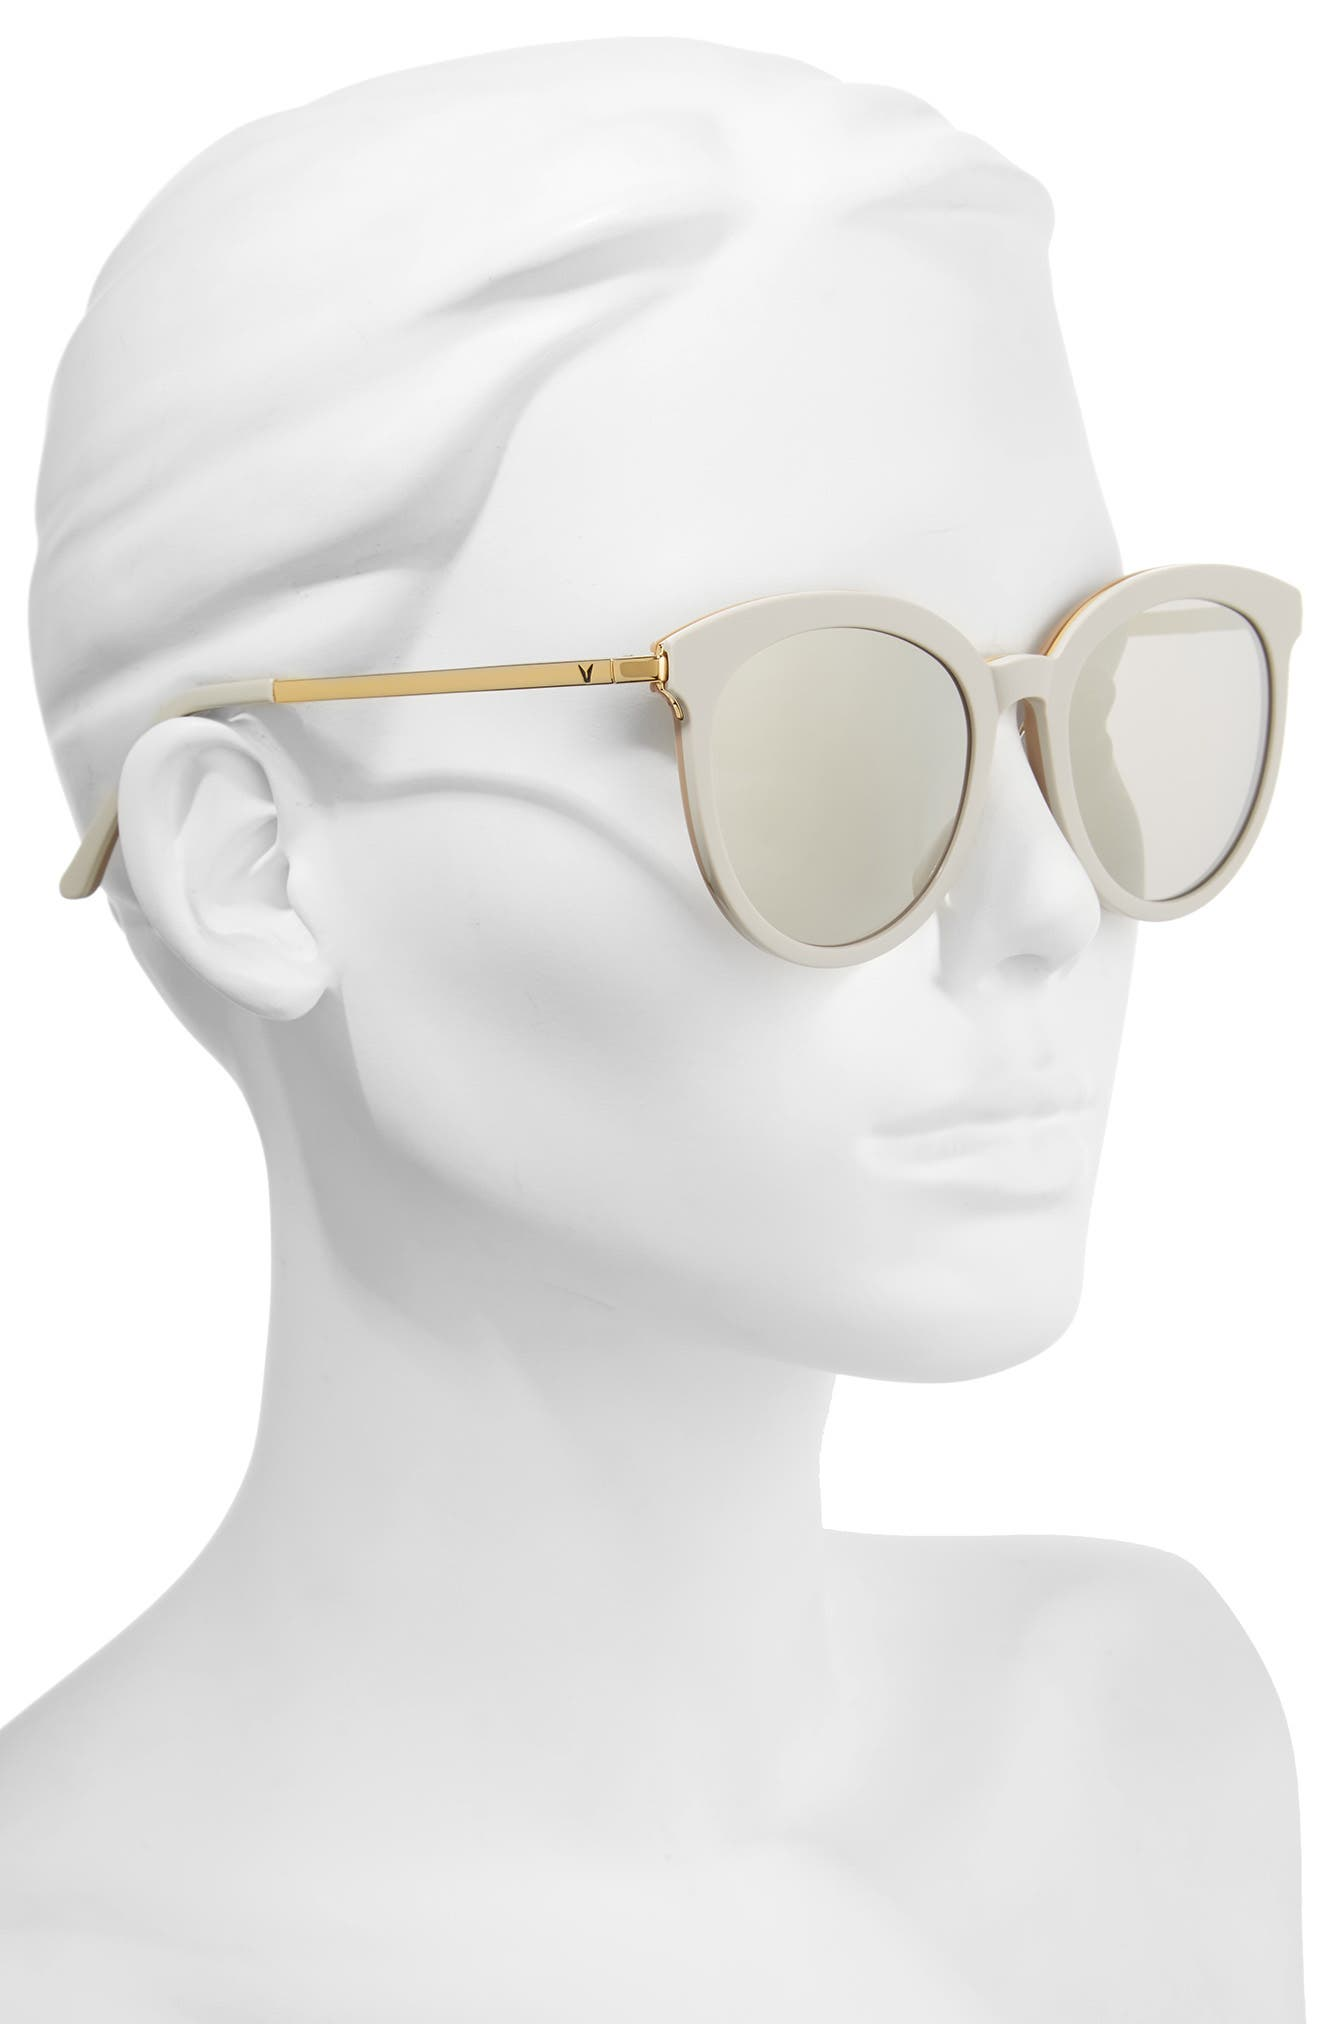 Vanilla Road 54mm Rounded Sunglasses,                             Alternate thumbnail 2, color,                             Grey/ Gold